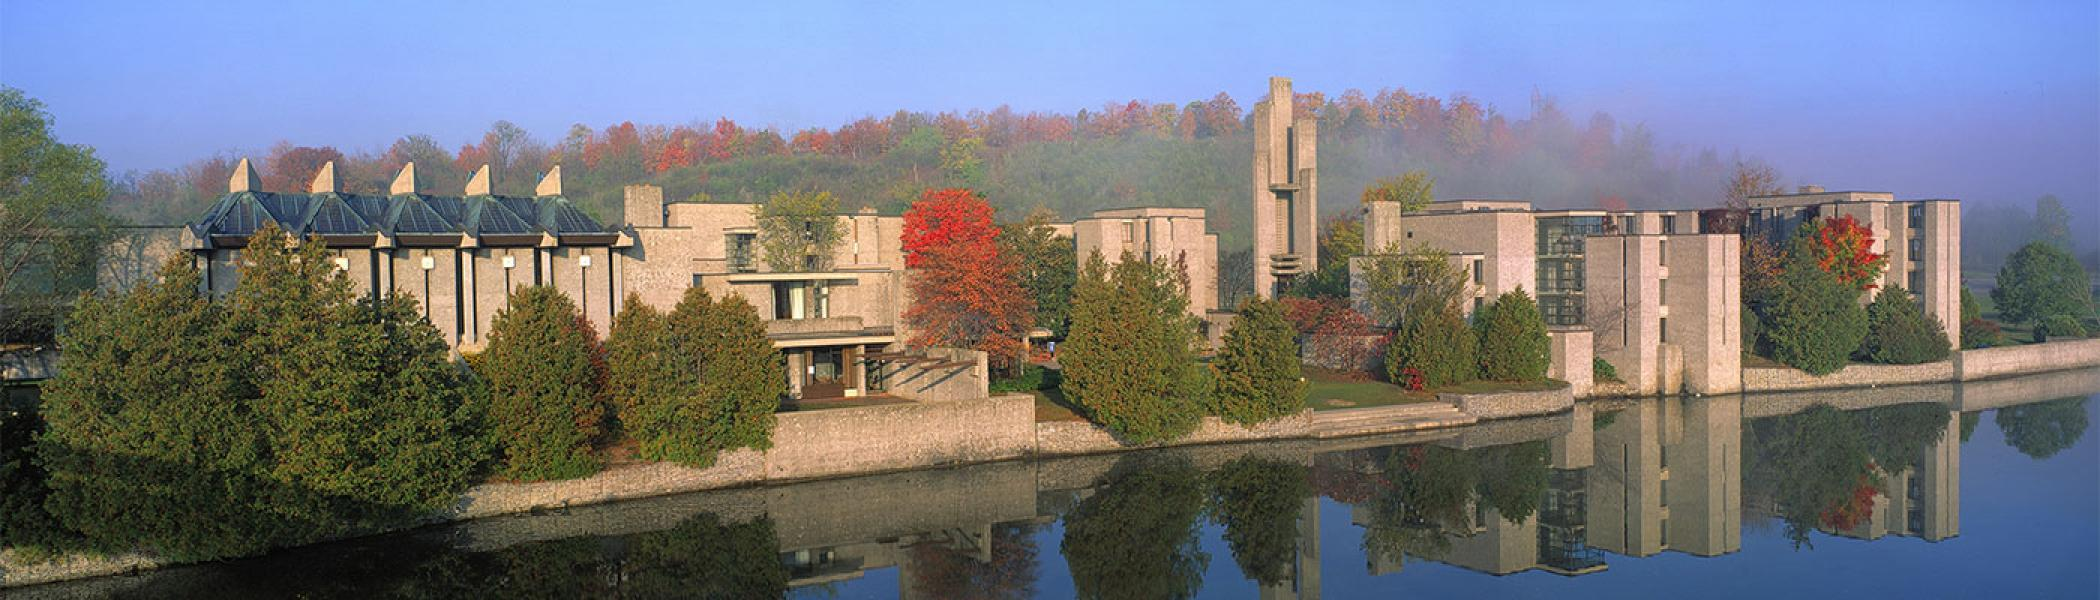 Shot of Trent's Champlain College from across the Otonabee River on a nice fall day.